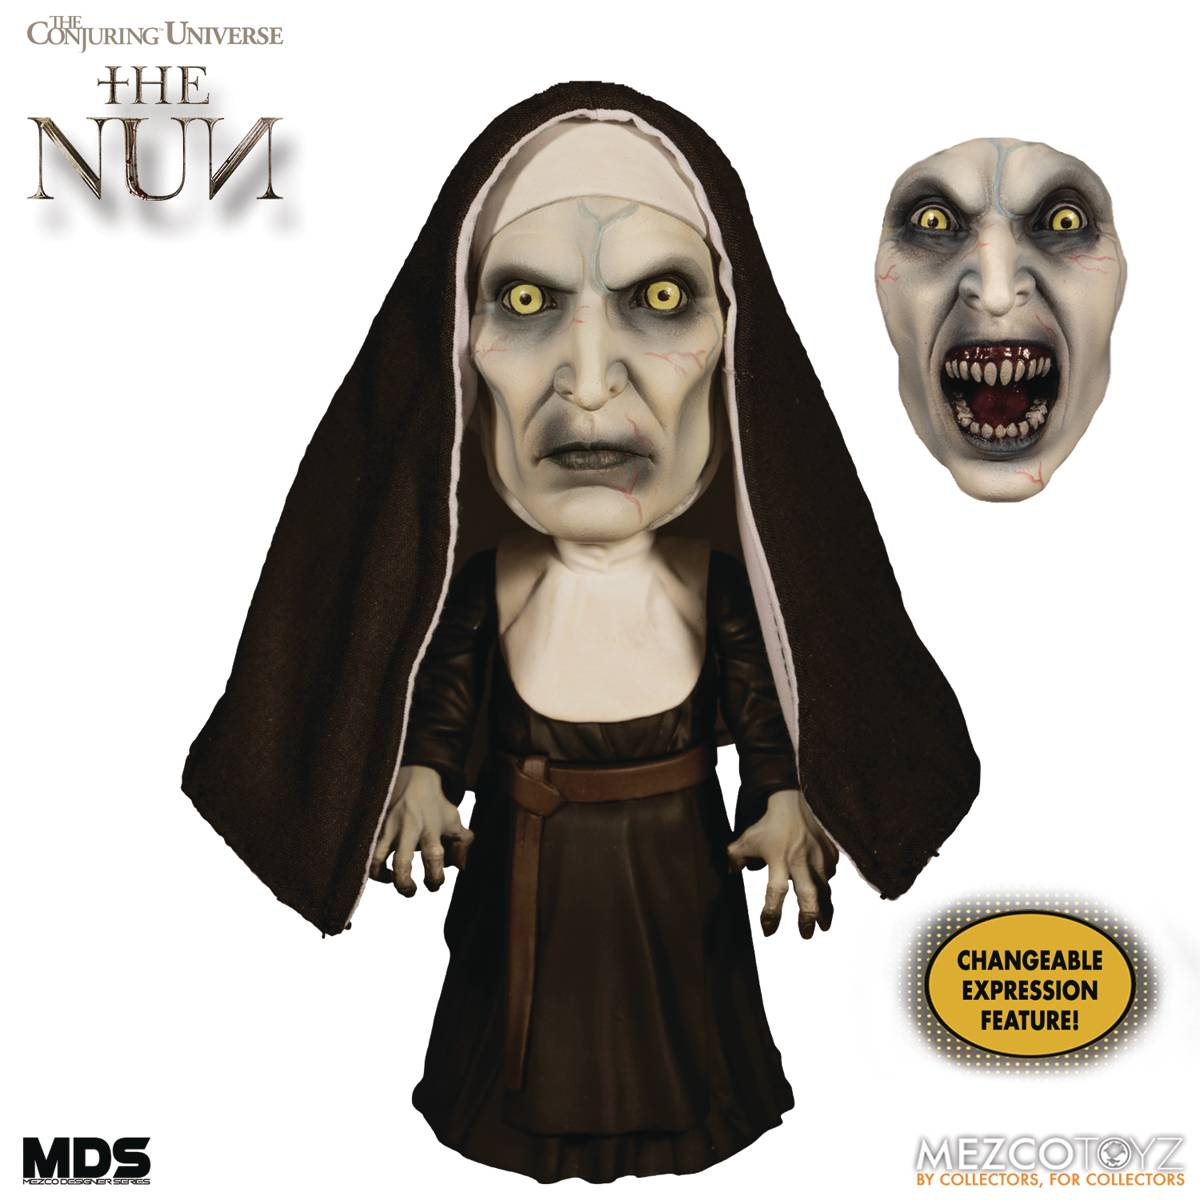 MDS MEGA SCALE THE NUN FIGURE